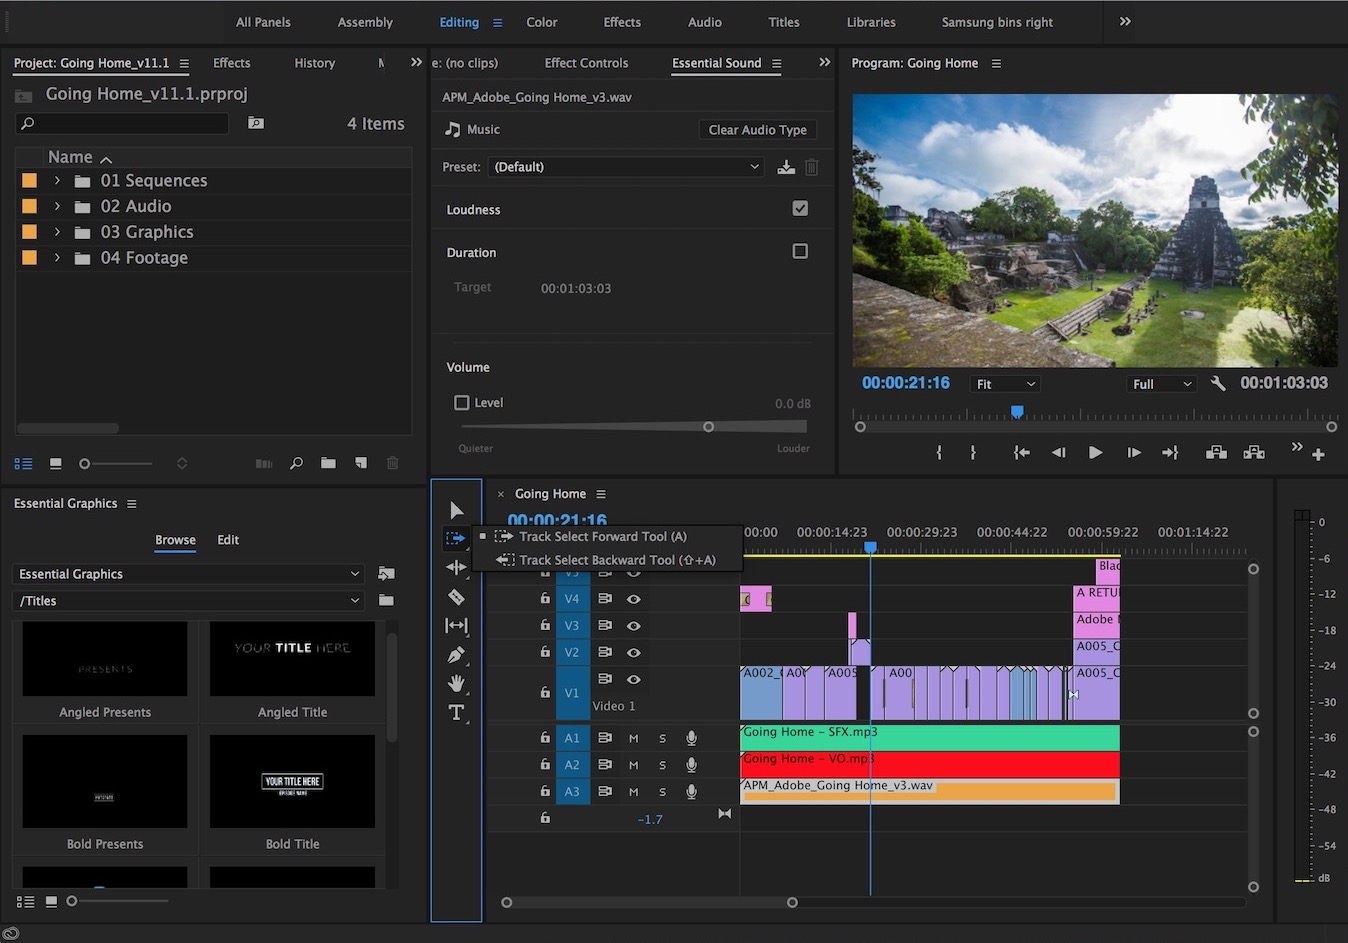 Adobe updates Premiere Pro CC for April 2017 2